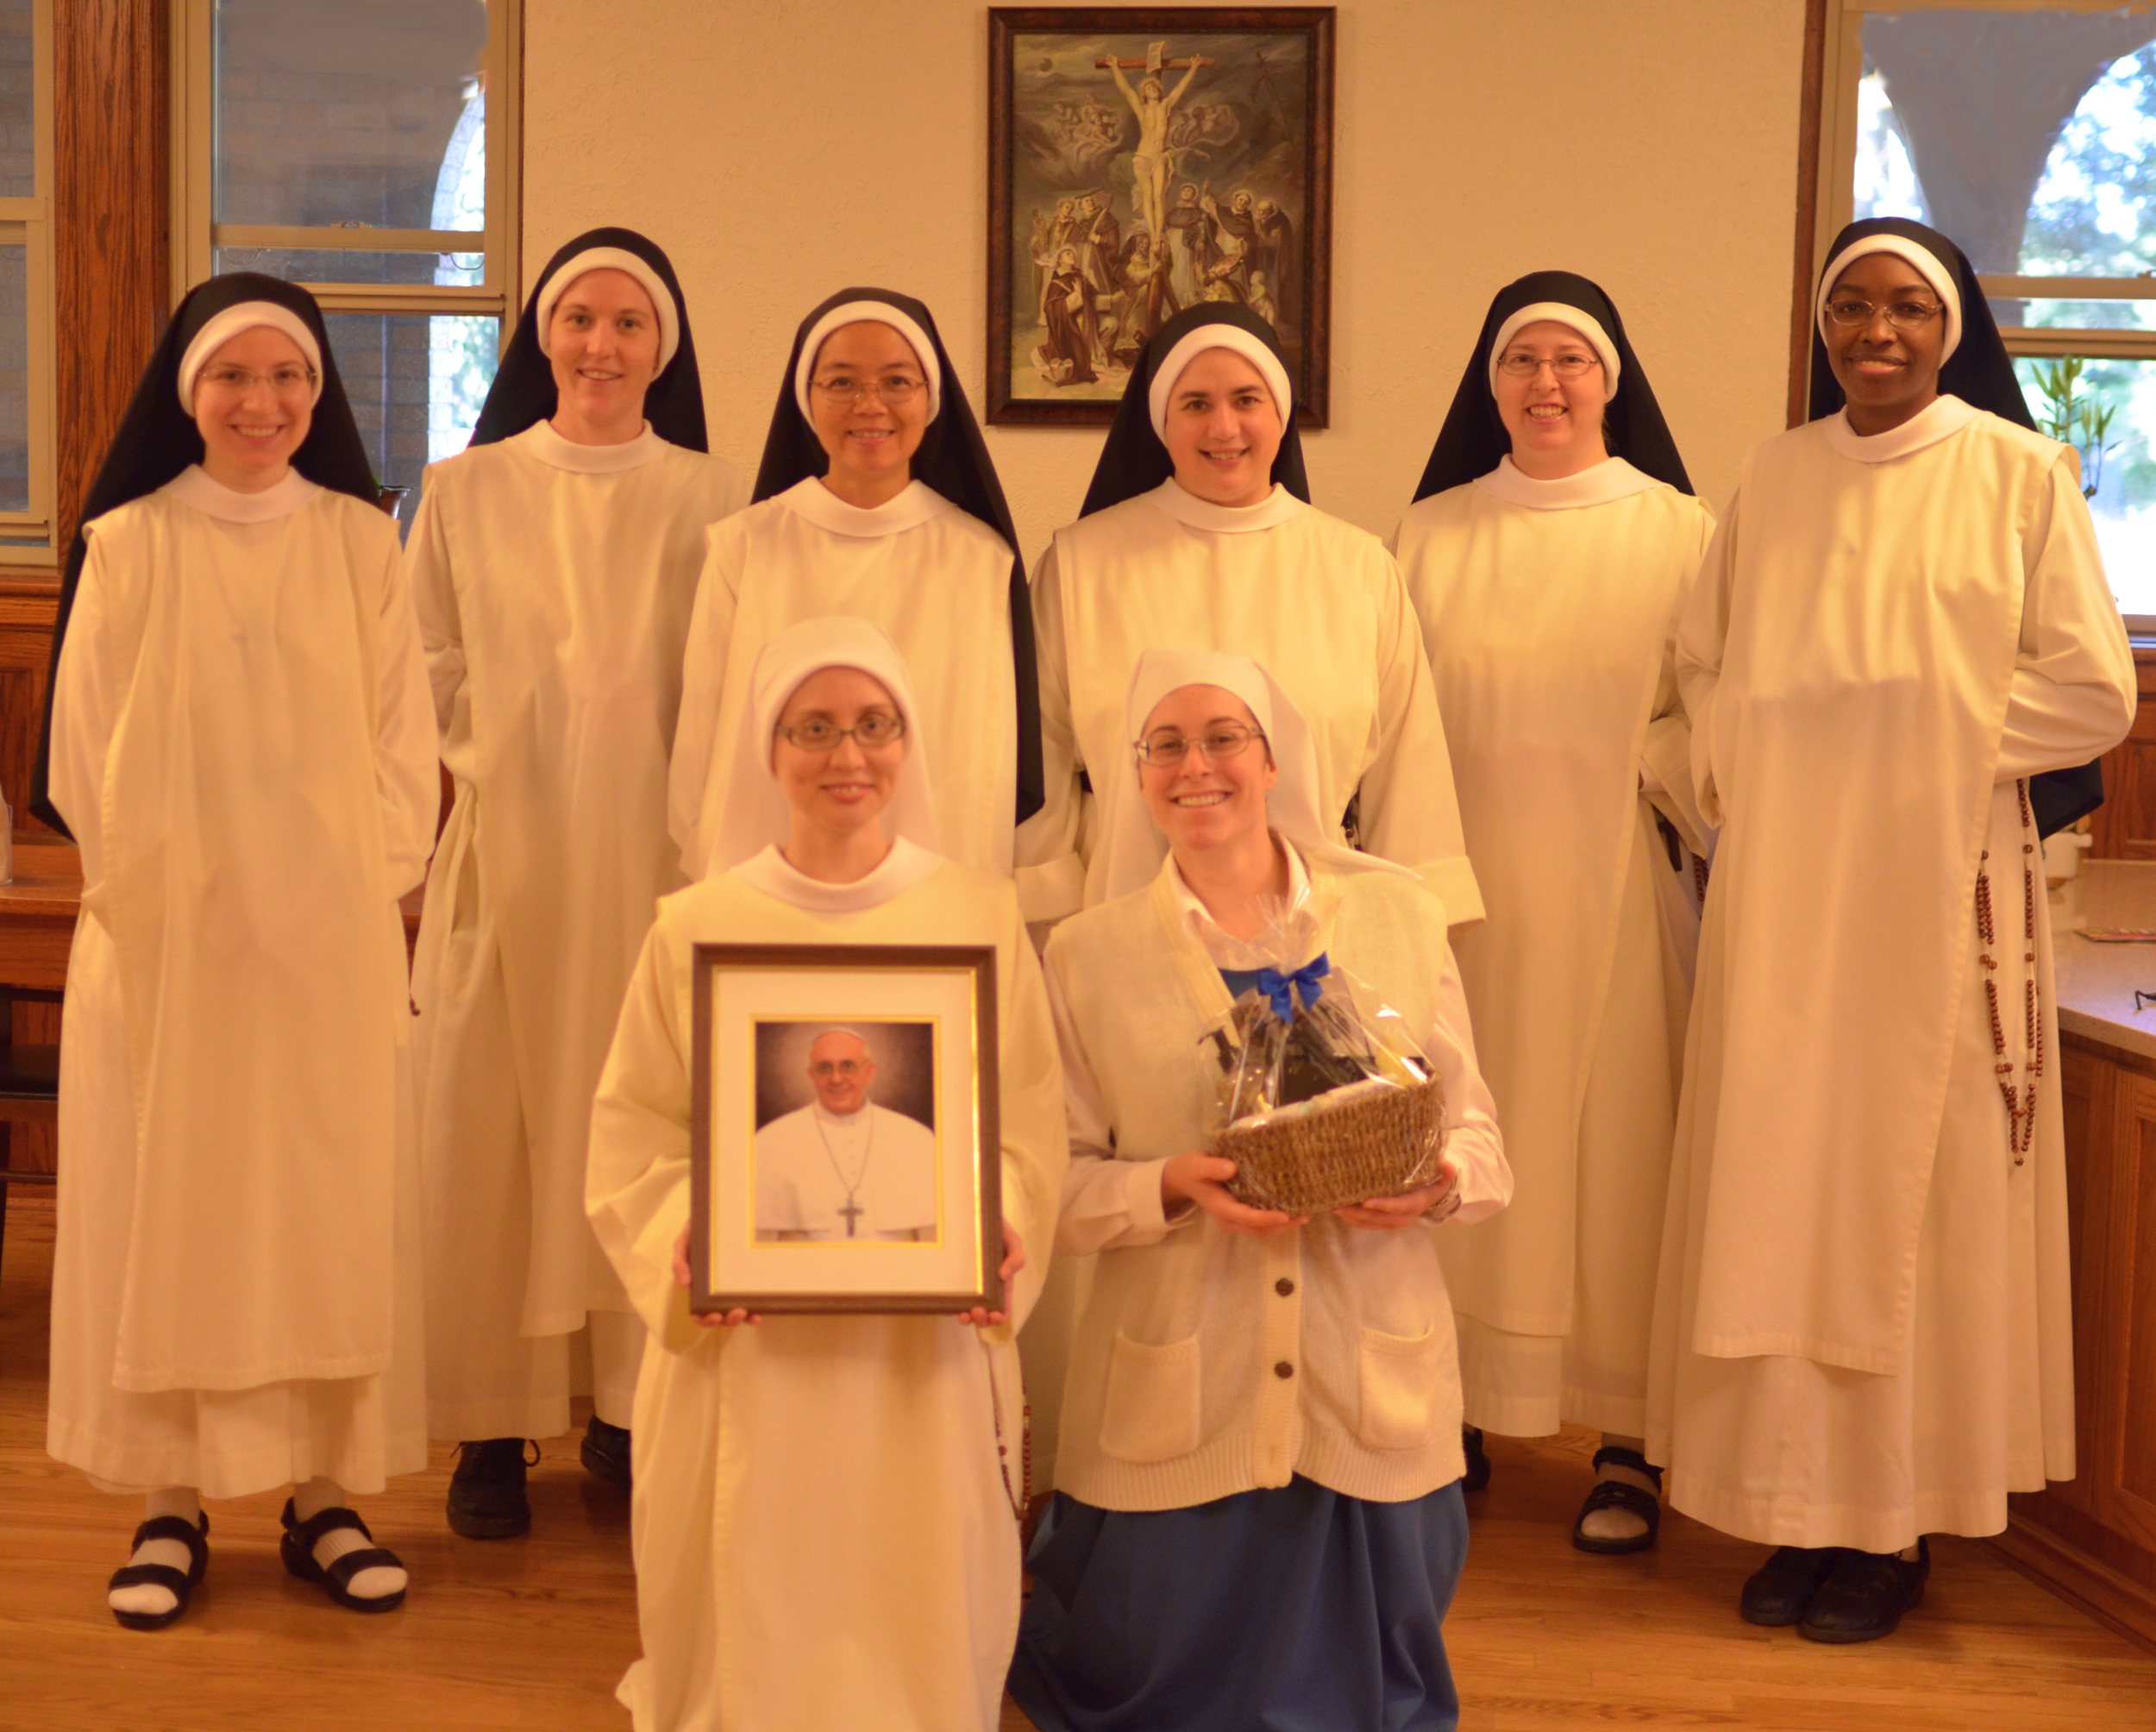 The sisters who work in the soap department pose with our picture of Pope Francis and his soap.